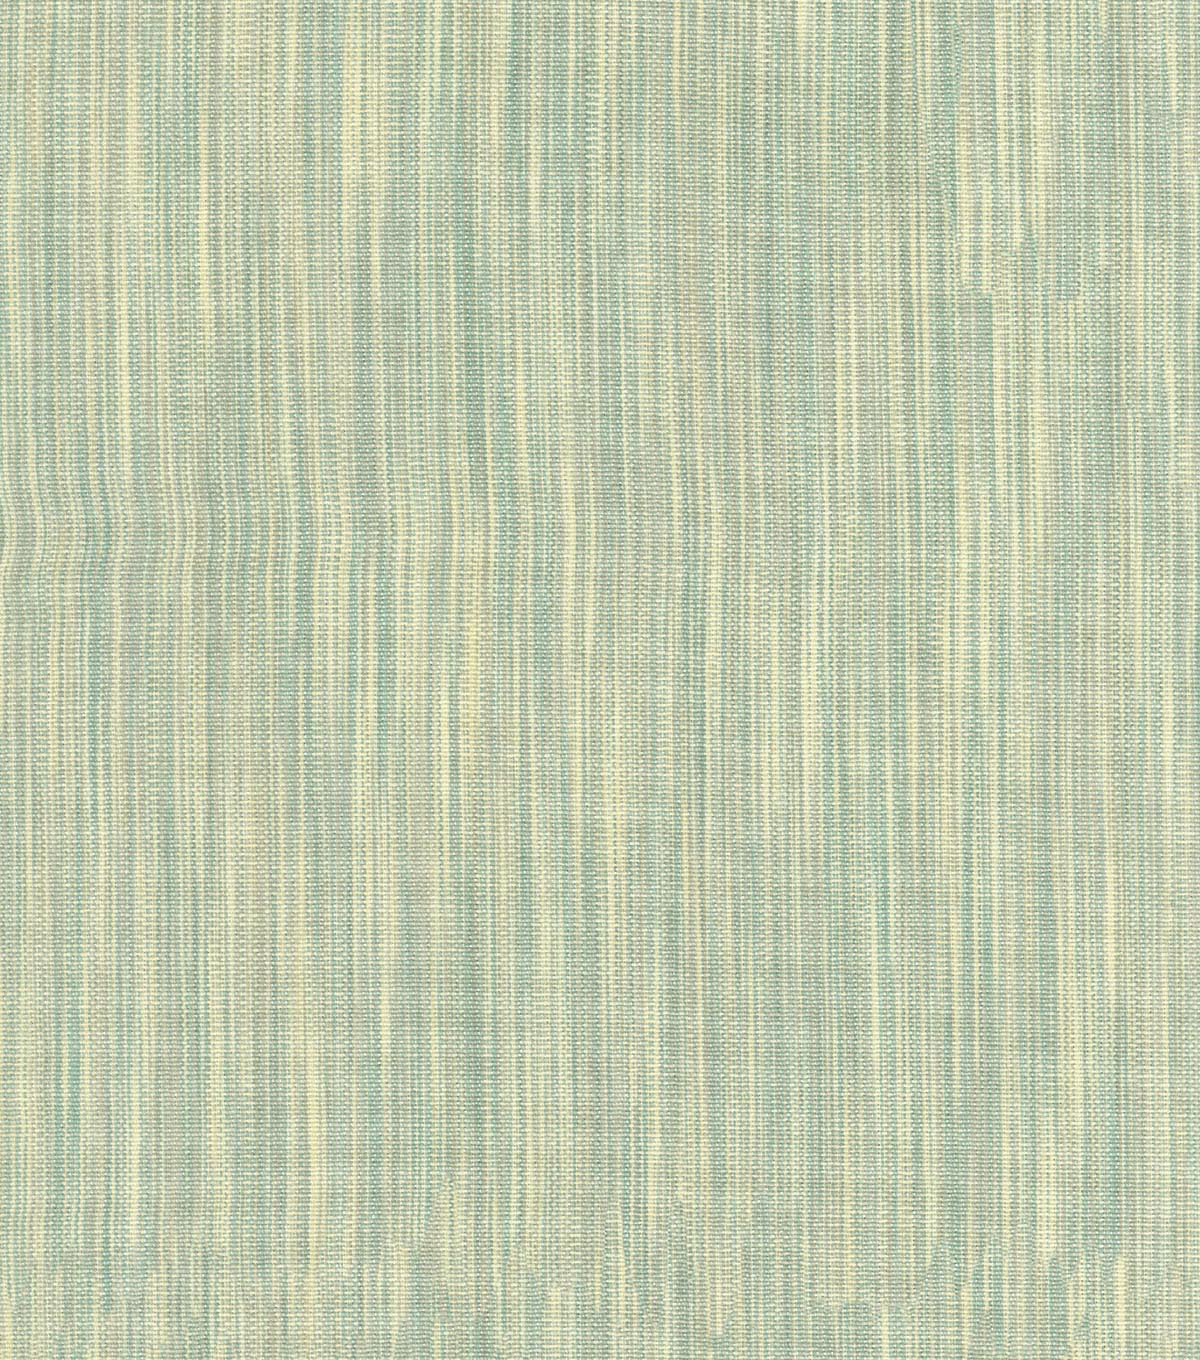 Home Decor 8\u0022x8\u0022 Swatch Fabric-IMAN Home Magical Threads Mineral